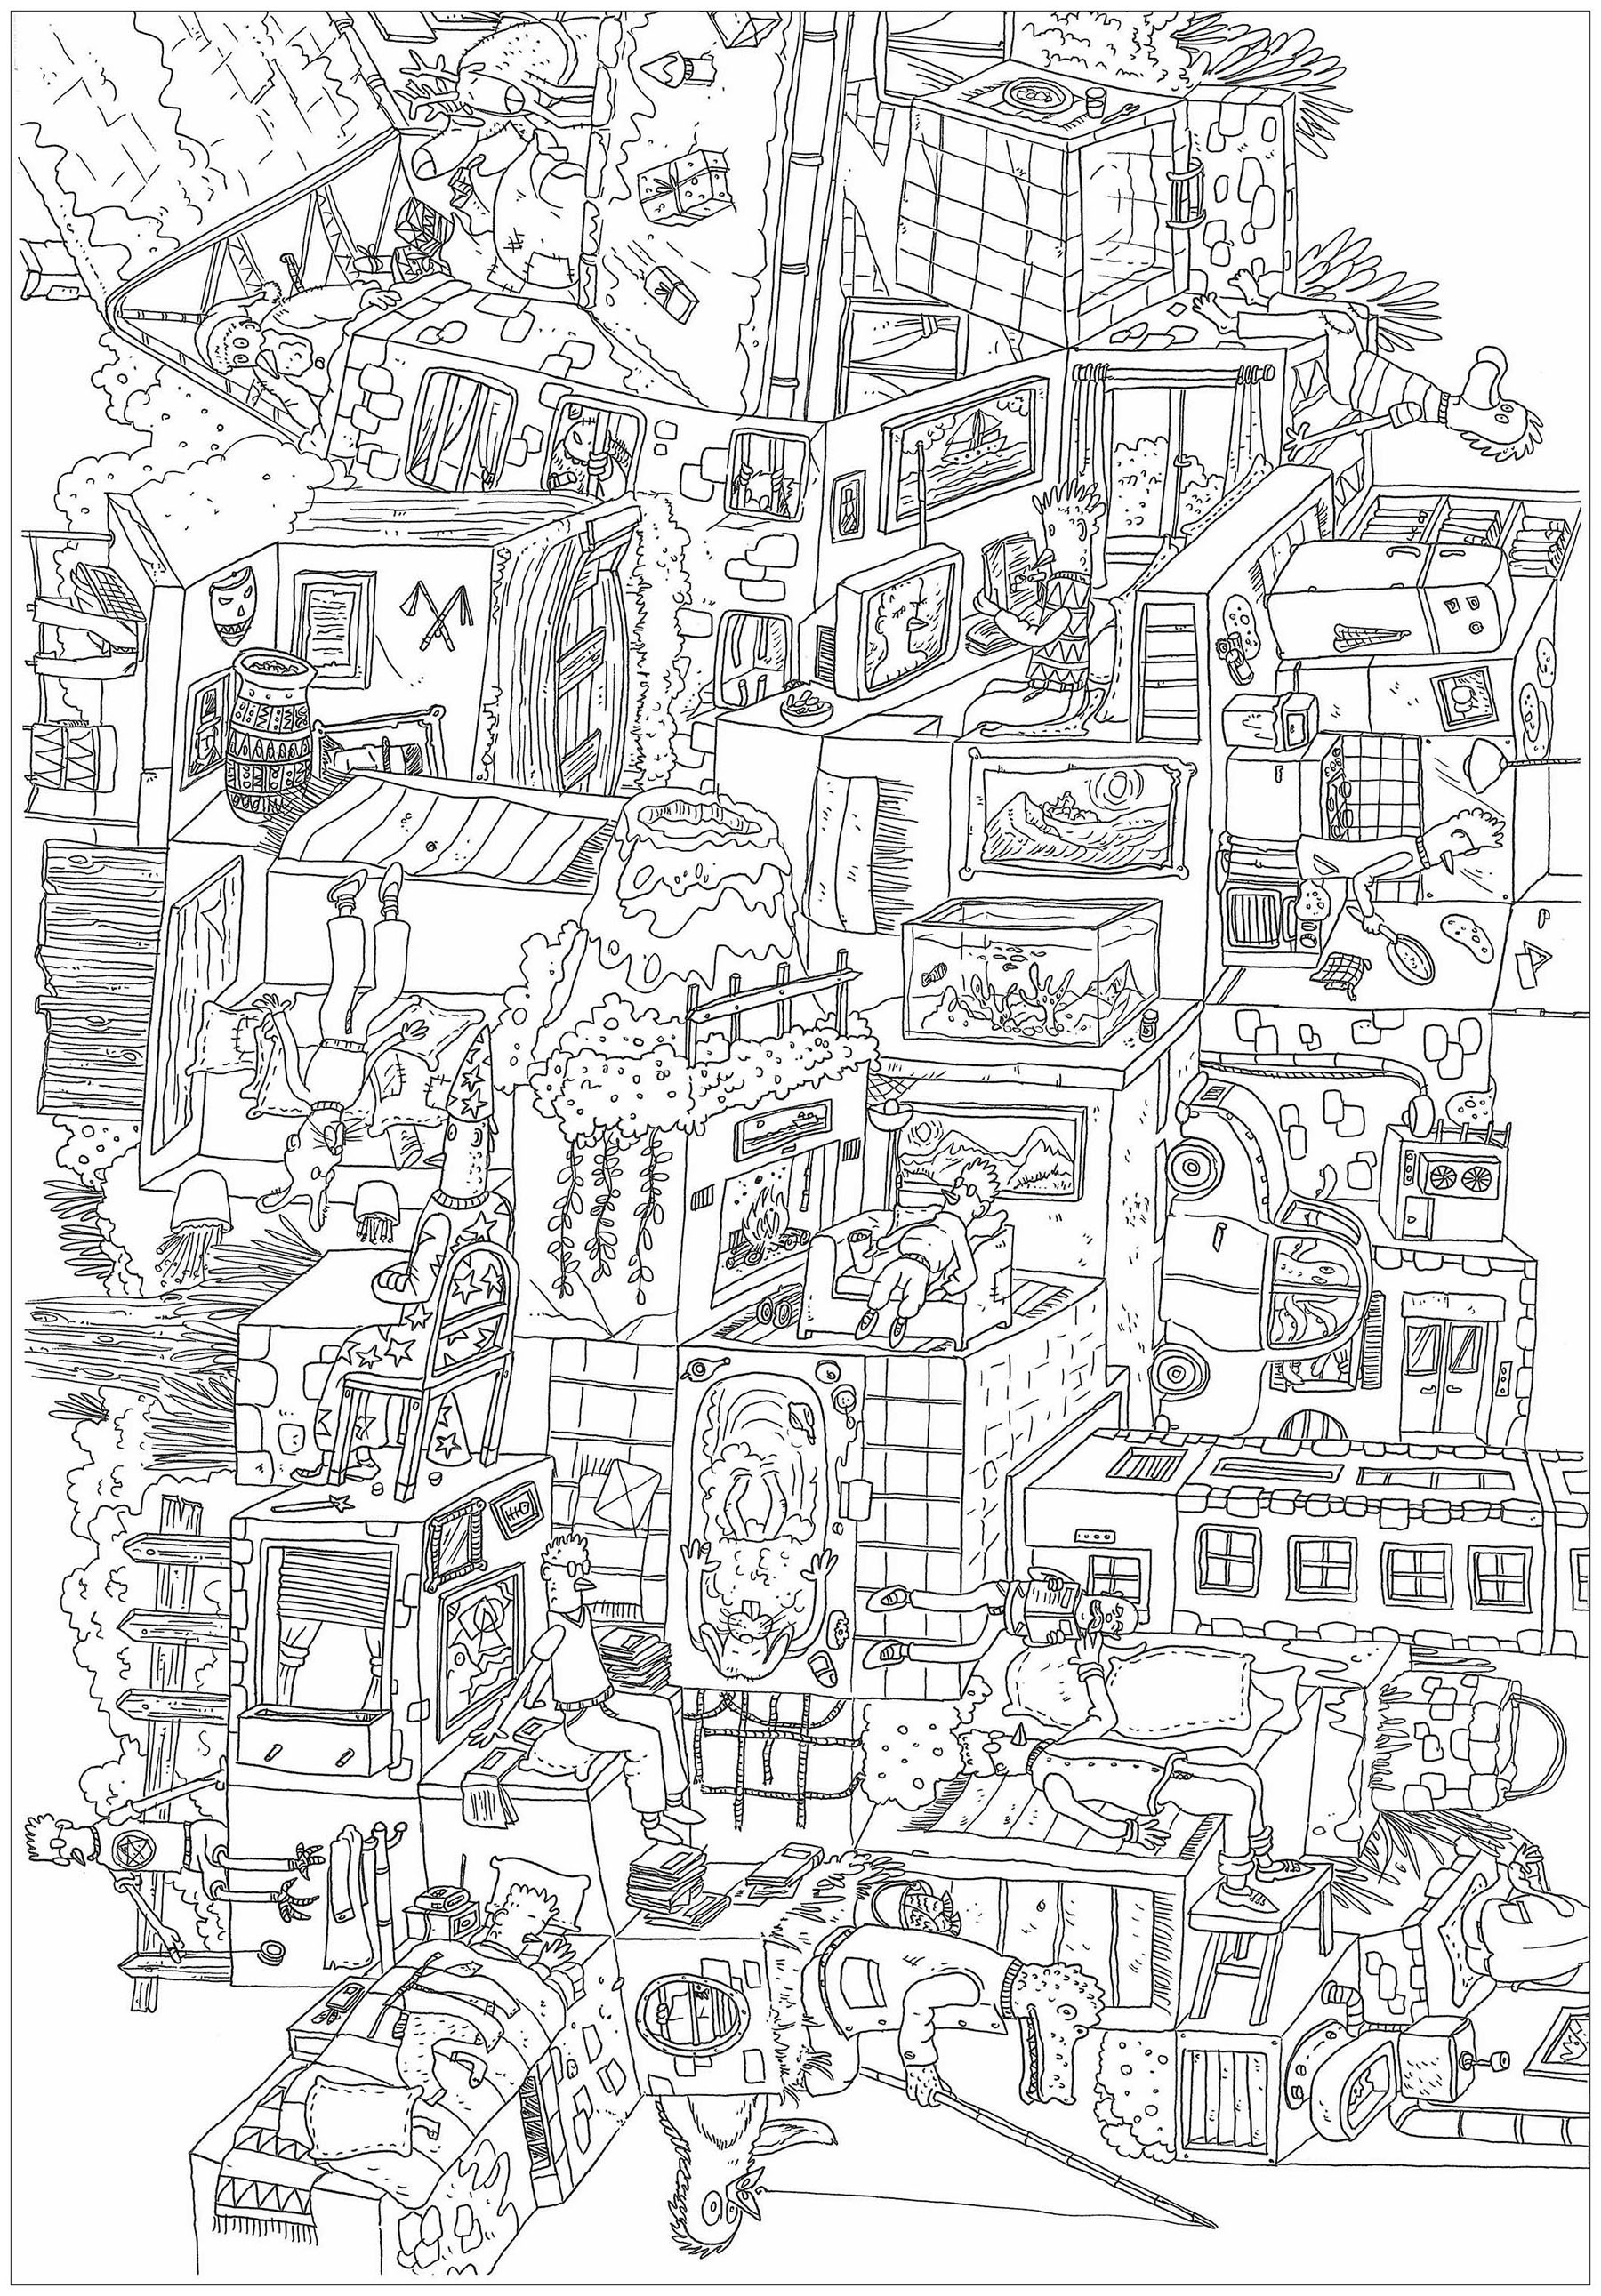 'Meli melo', a complex coloring page, 'Where is Waldo ?' style